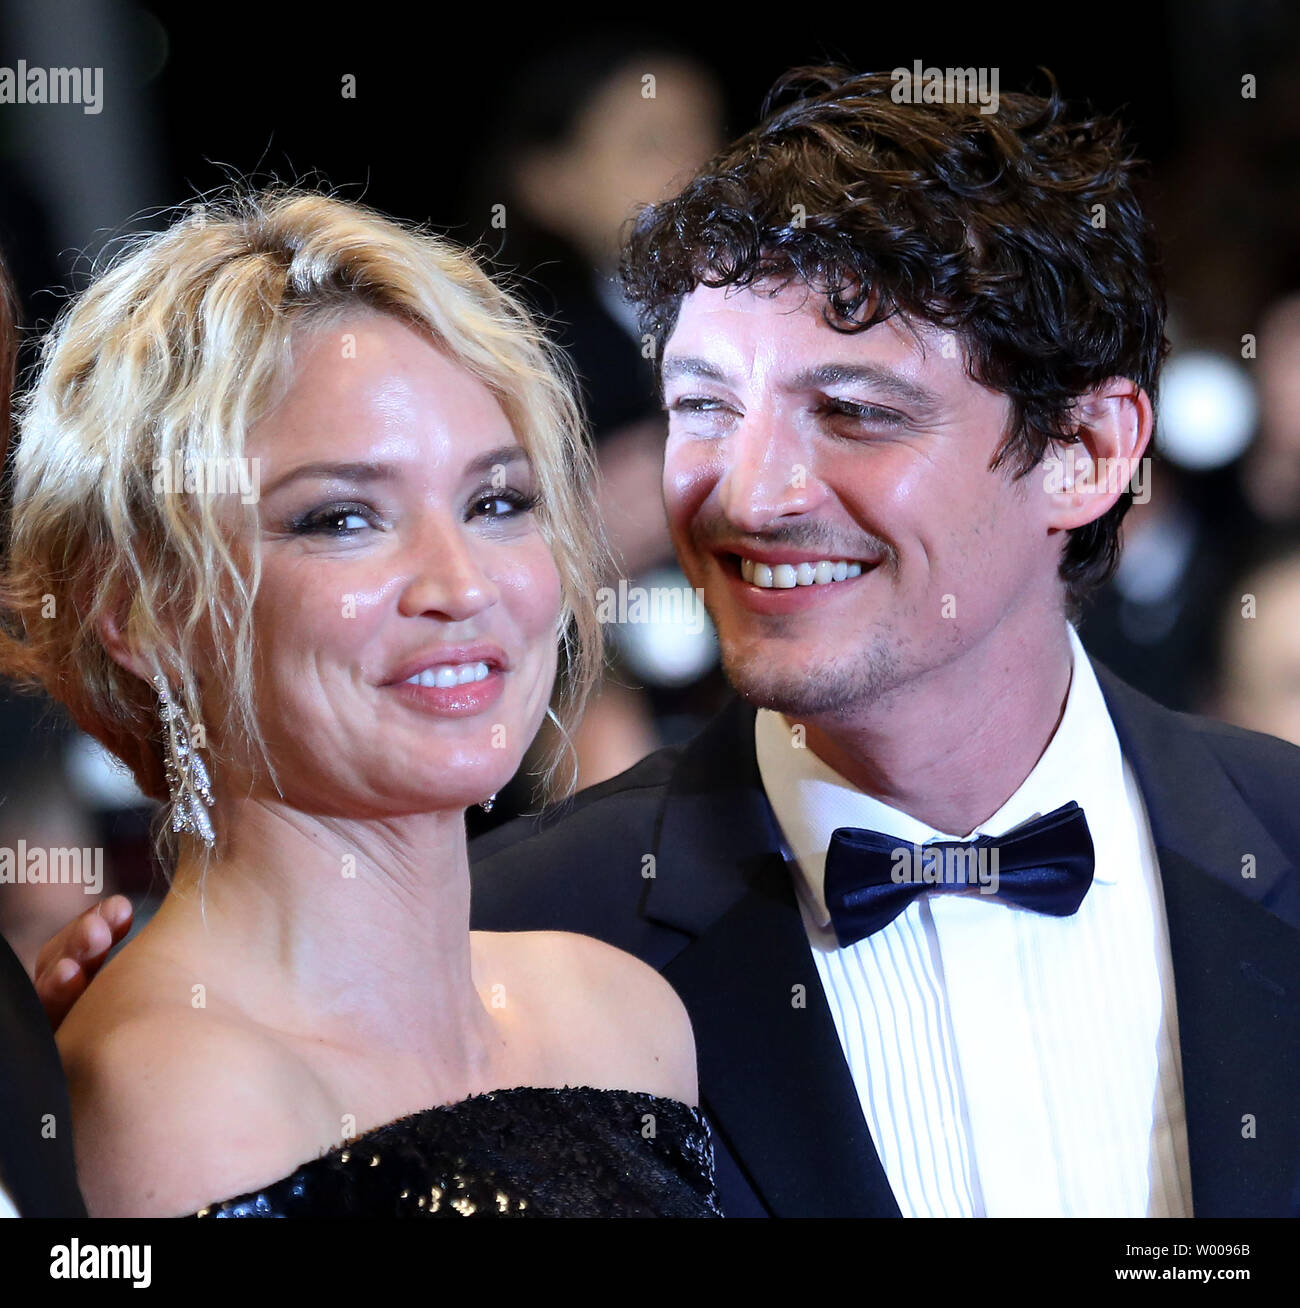 Virginie Efira And Niels Schneider Arrive On The Red Carpet After The Screening Of The Film Sybil At The 72nd Annual Cannes International Film Festival In Cannes France On May 24 2019